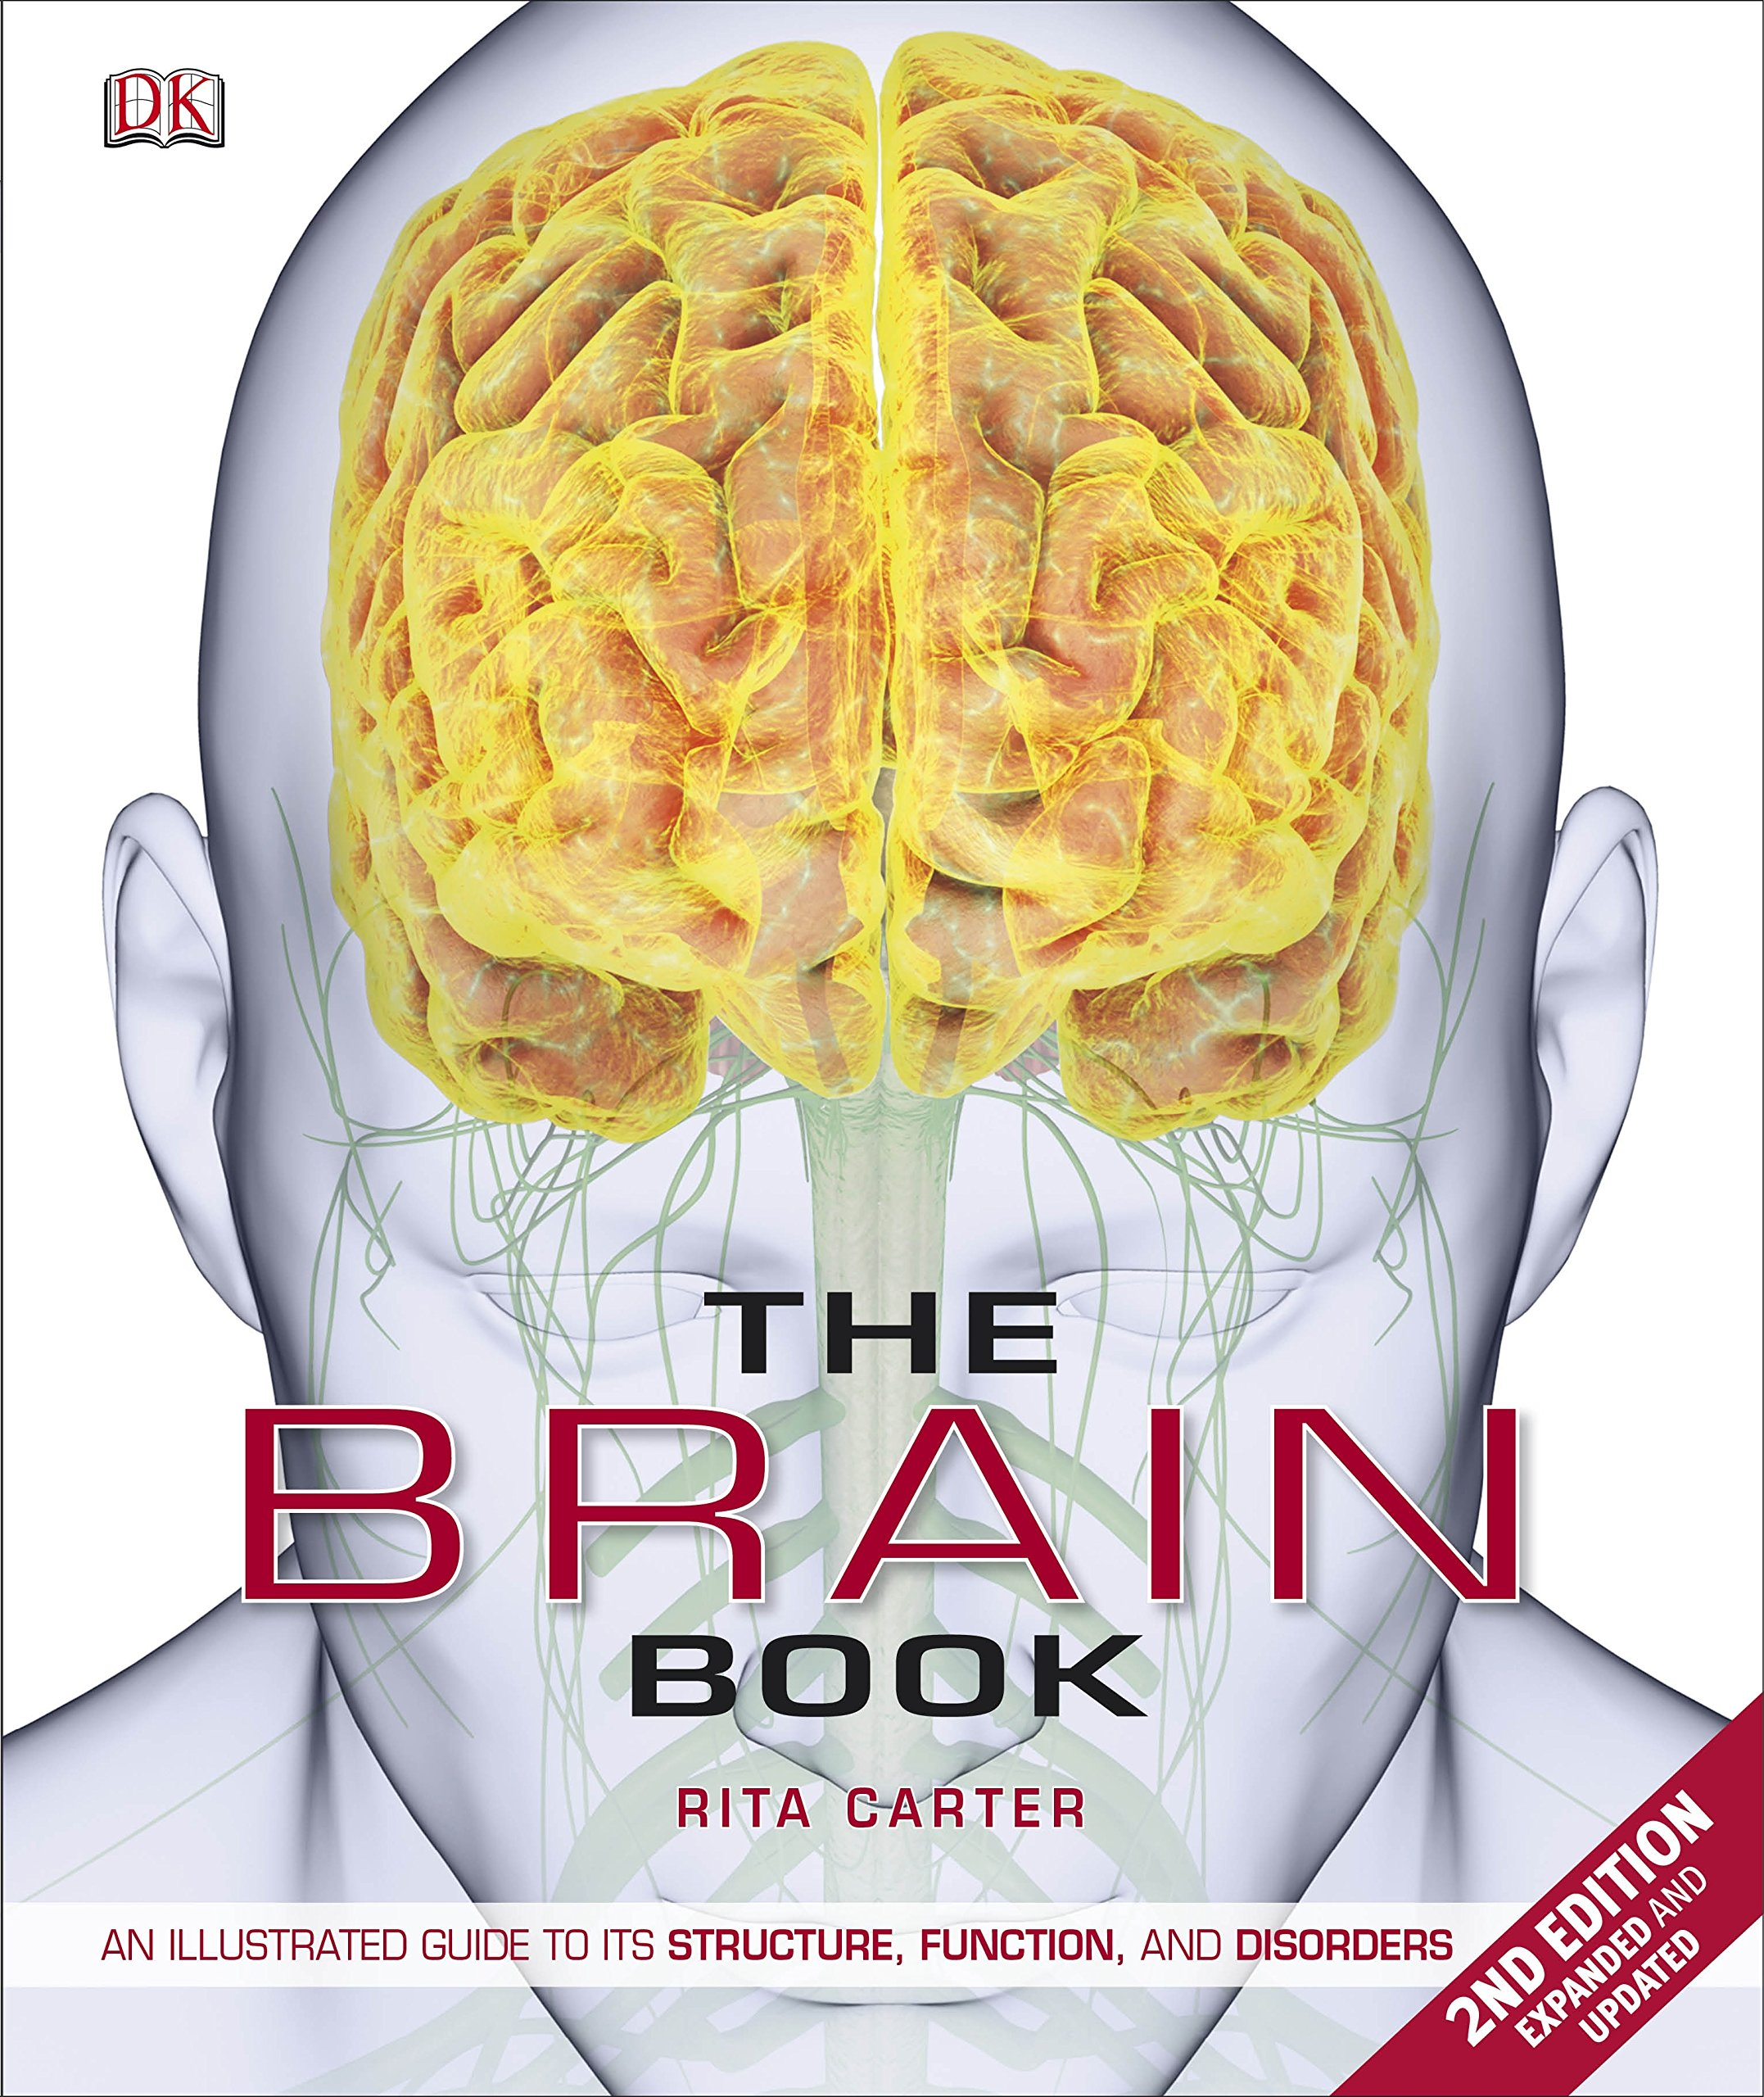 the brain book an illustrated guide to its structure, functionsfollow the author